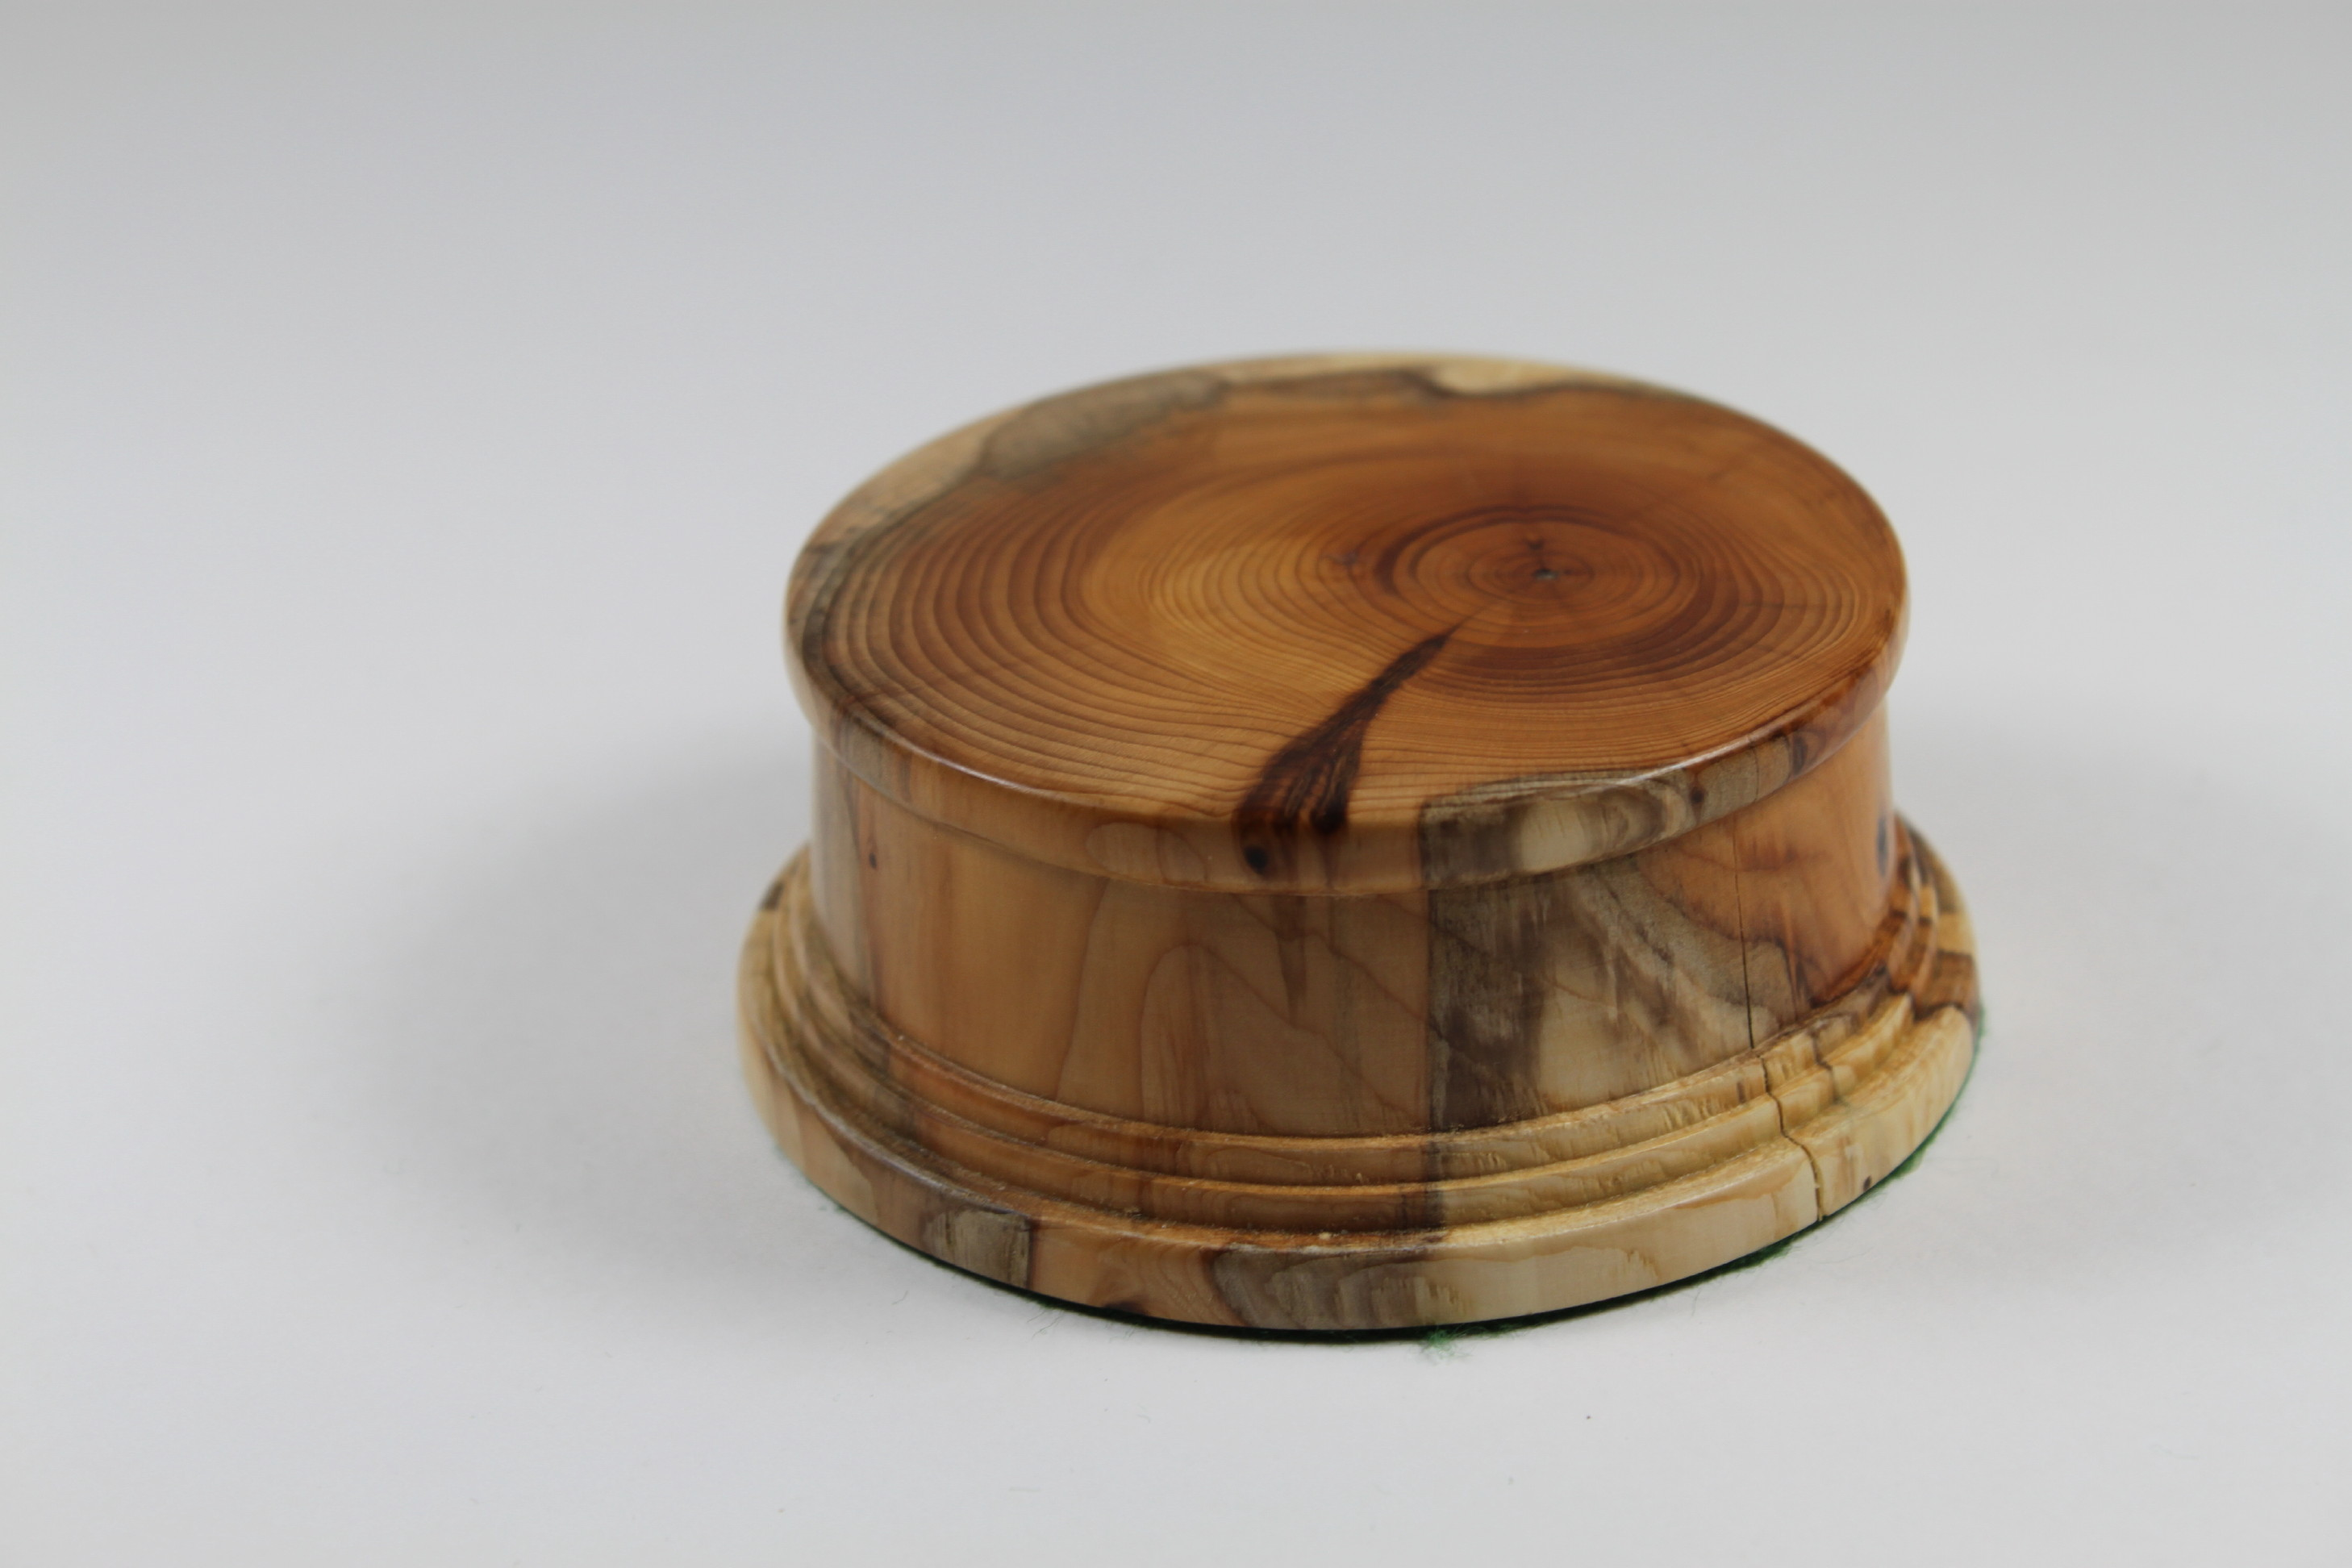 Yew solid wood Model / Trophy Base 30mm High and a display area of 70mm